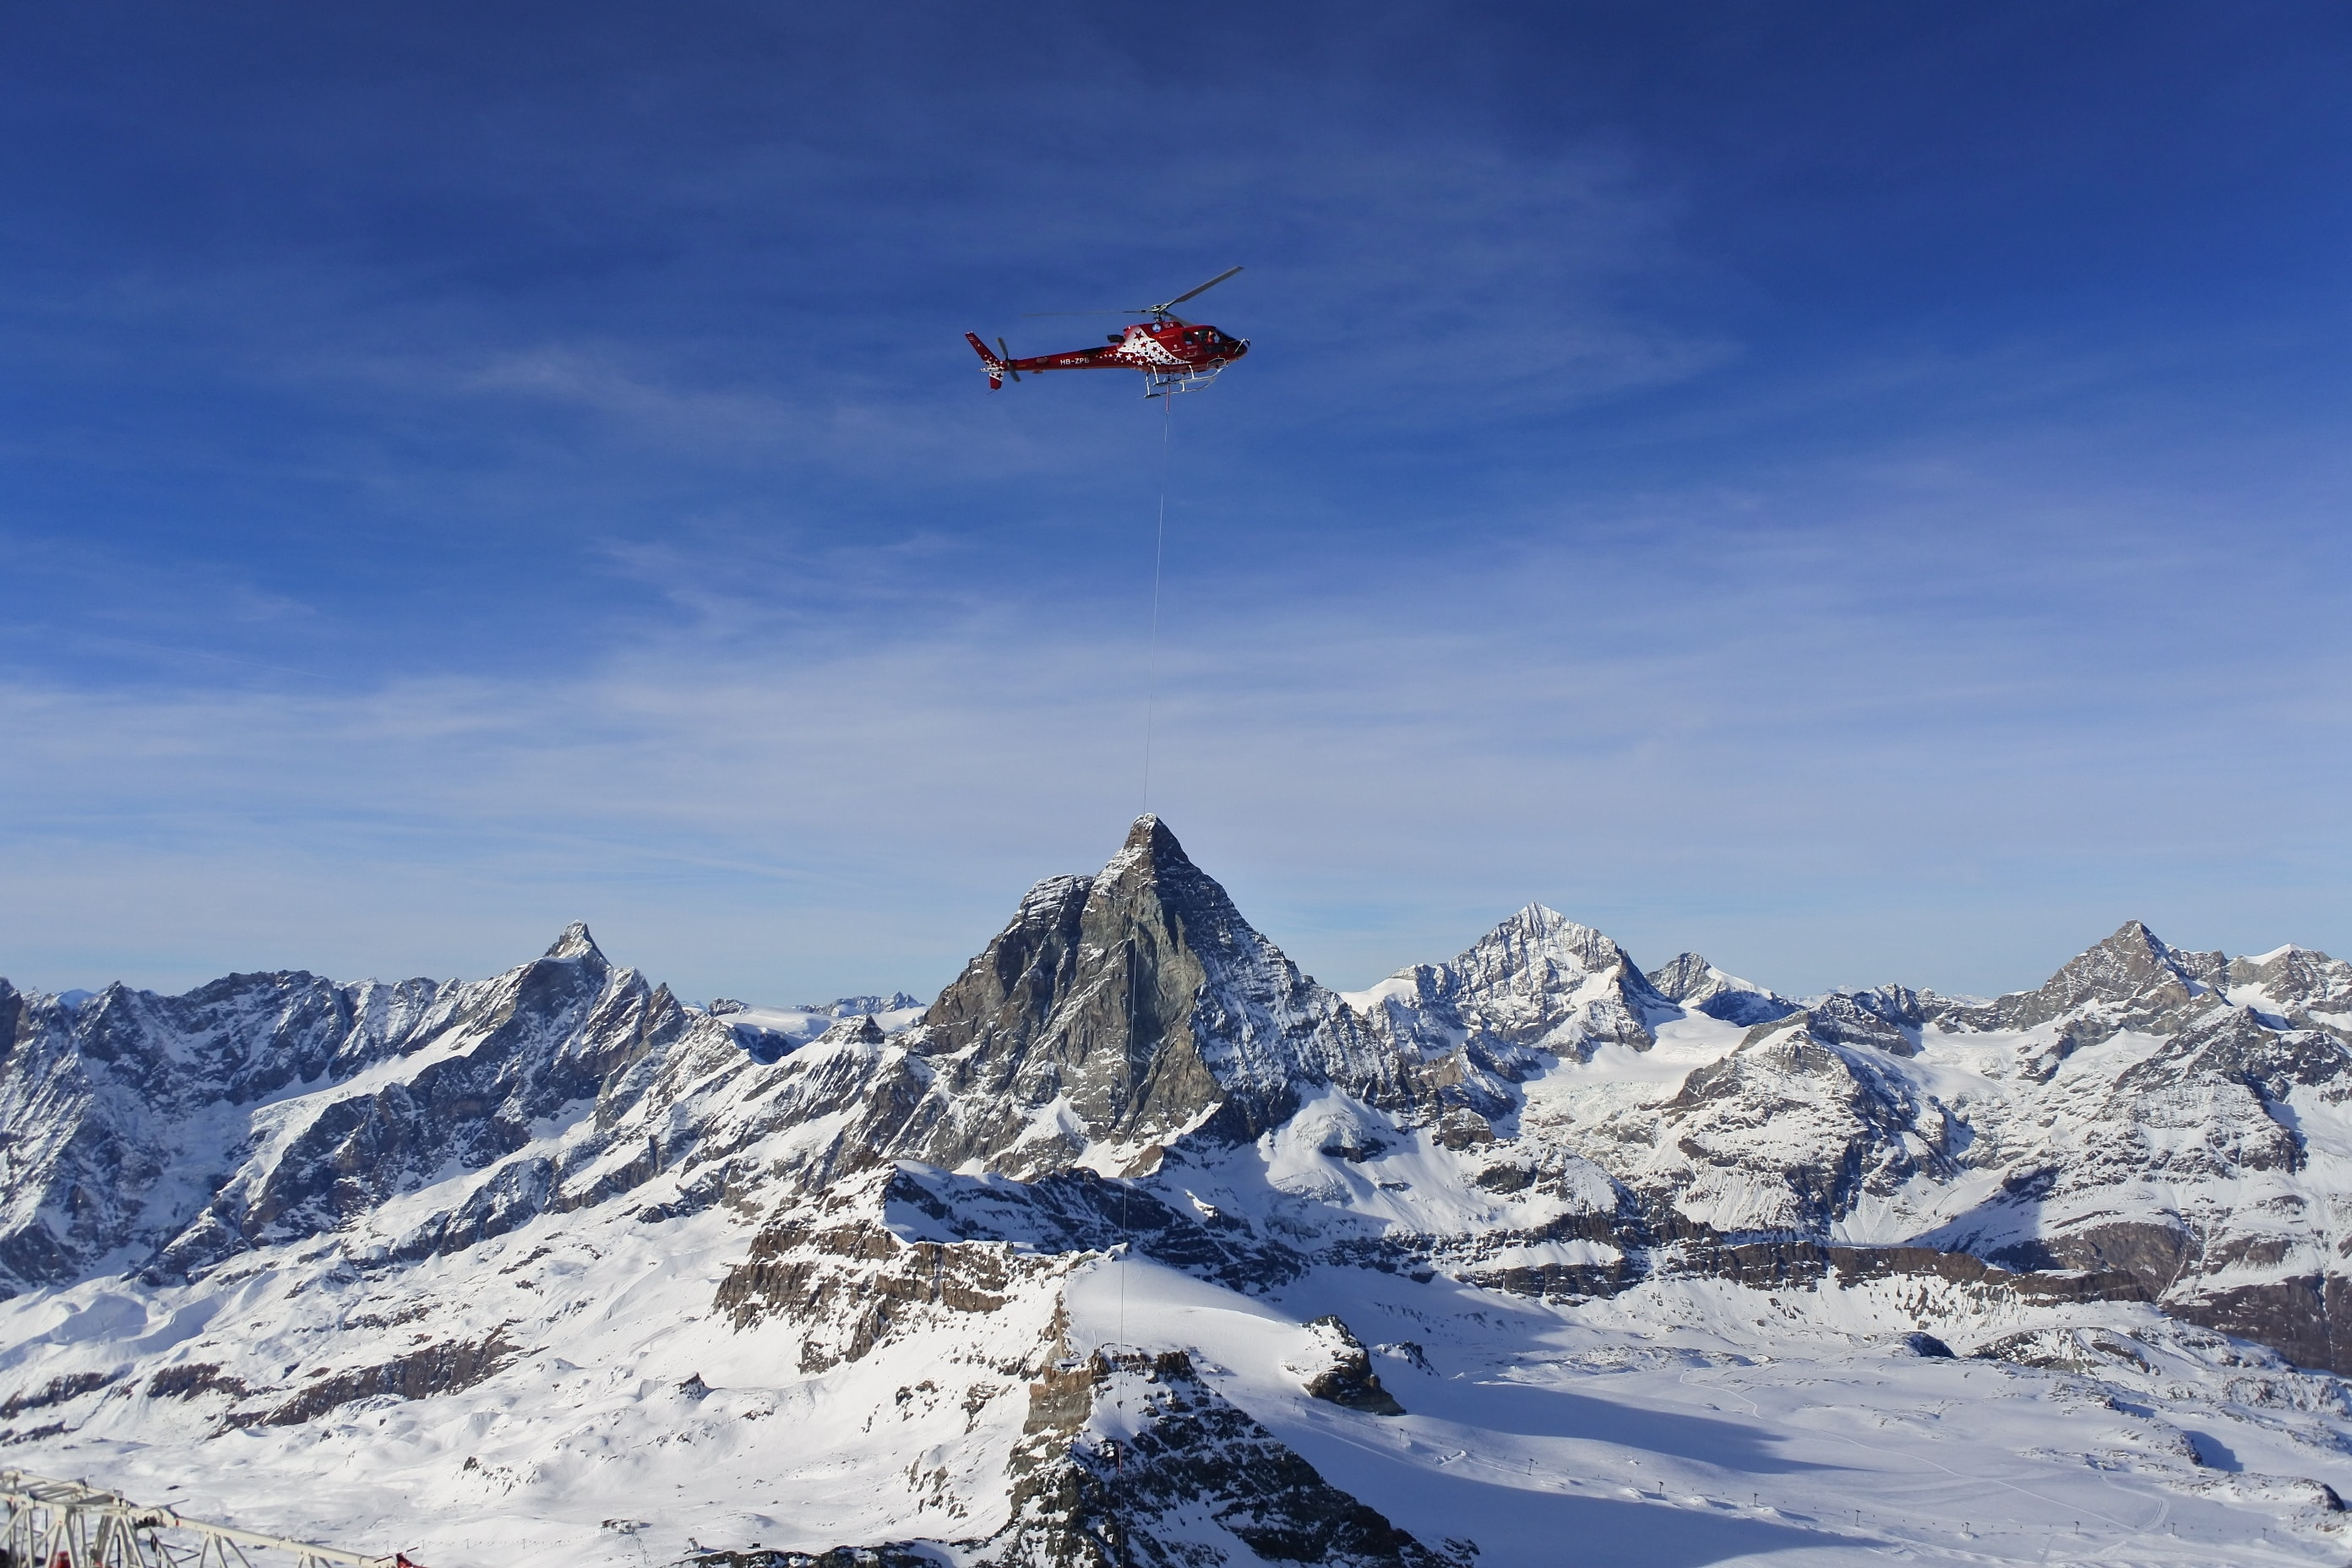 photo of red helicopter flying in snowy mountain